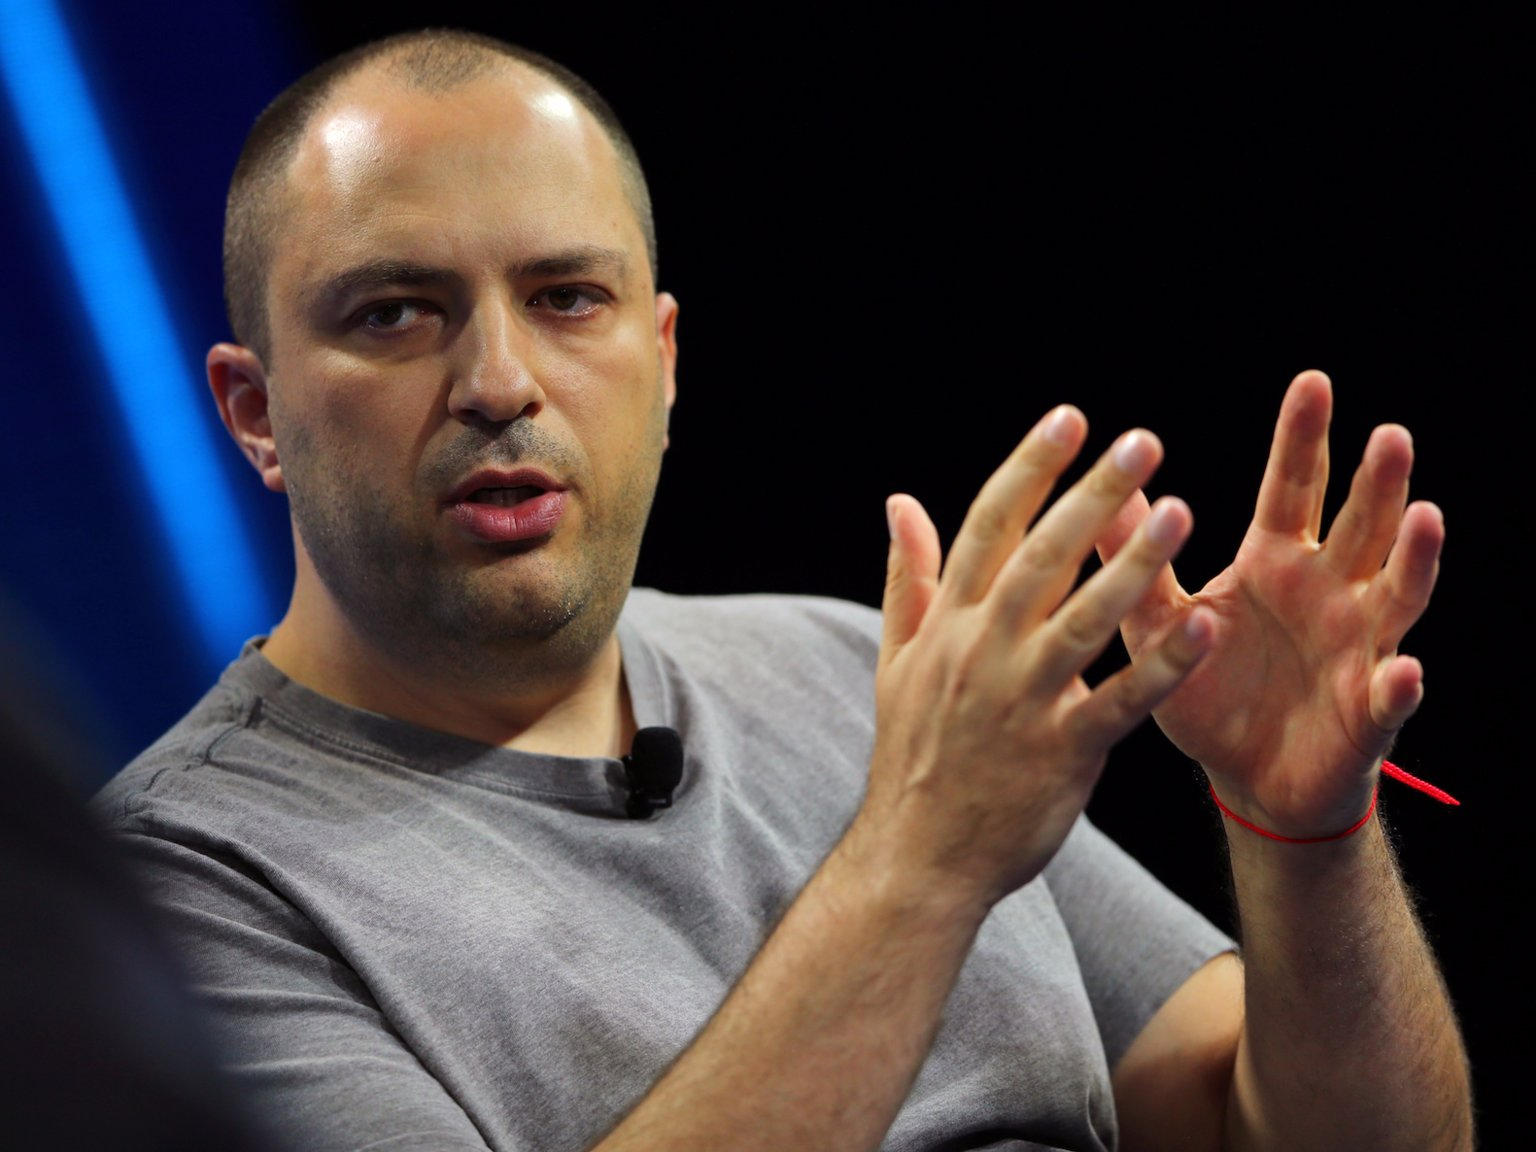 The billionaire cofounder of WhatsApp is leaving Facebook to collect cars and play ultimate frisbee